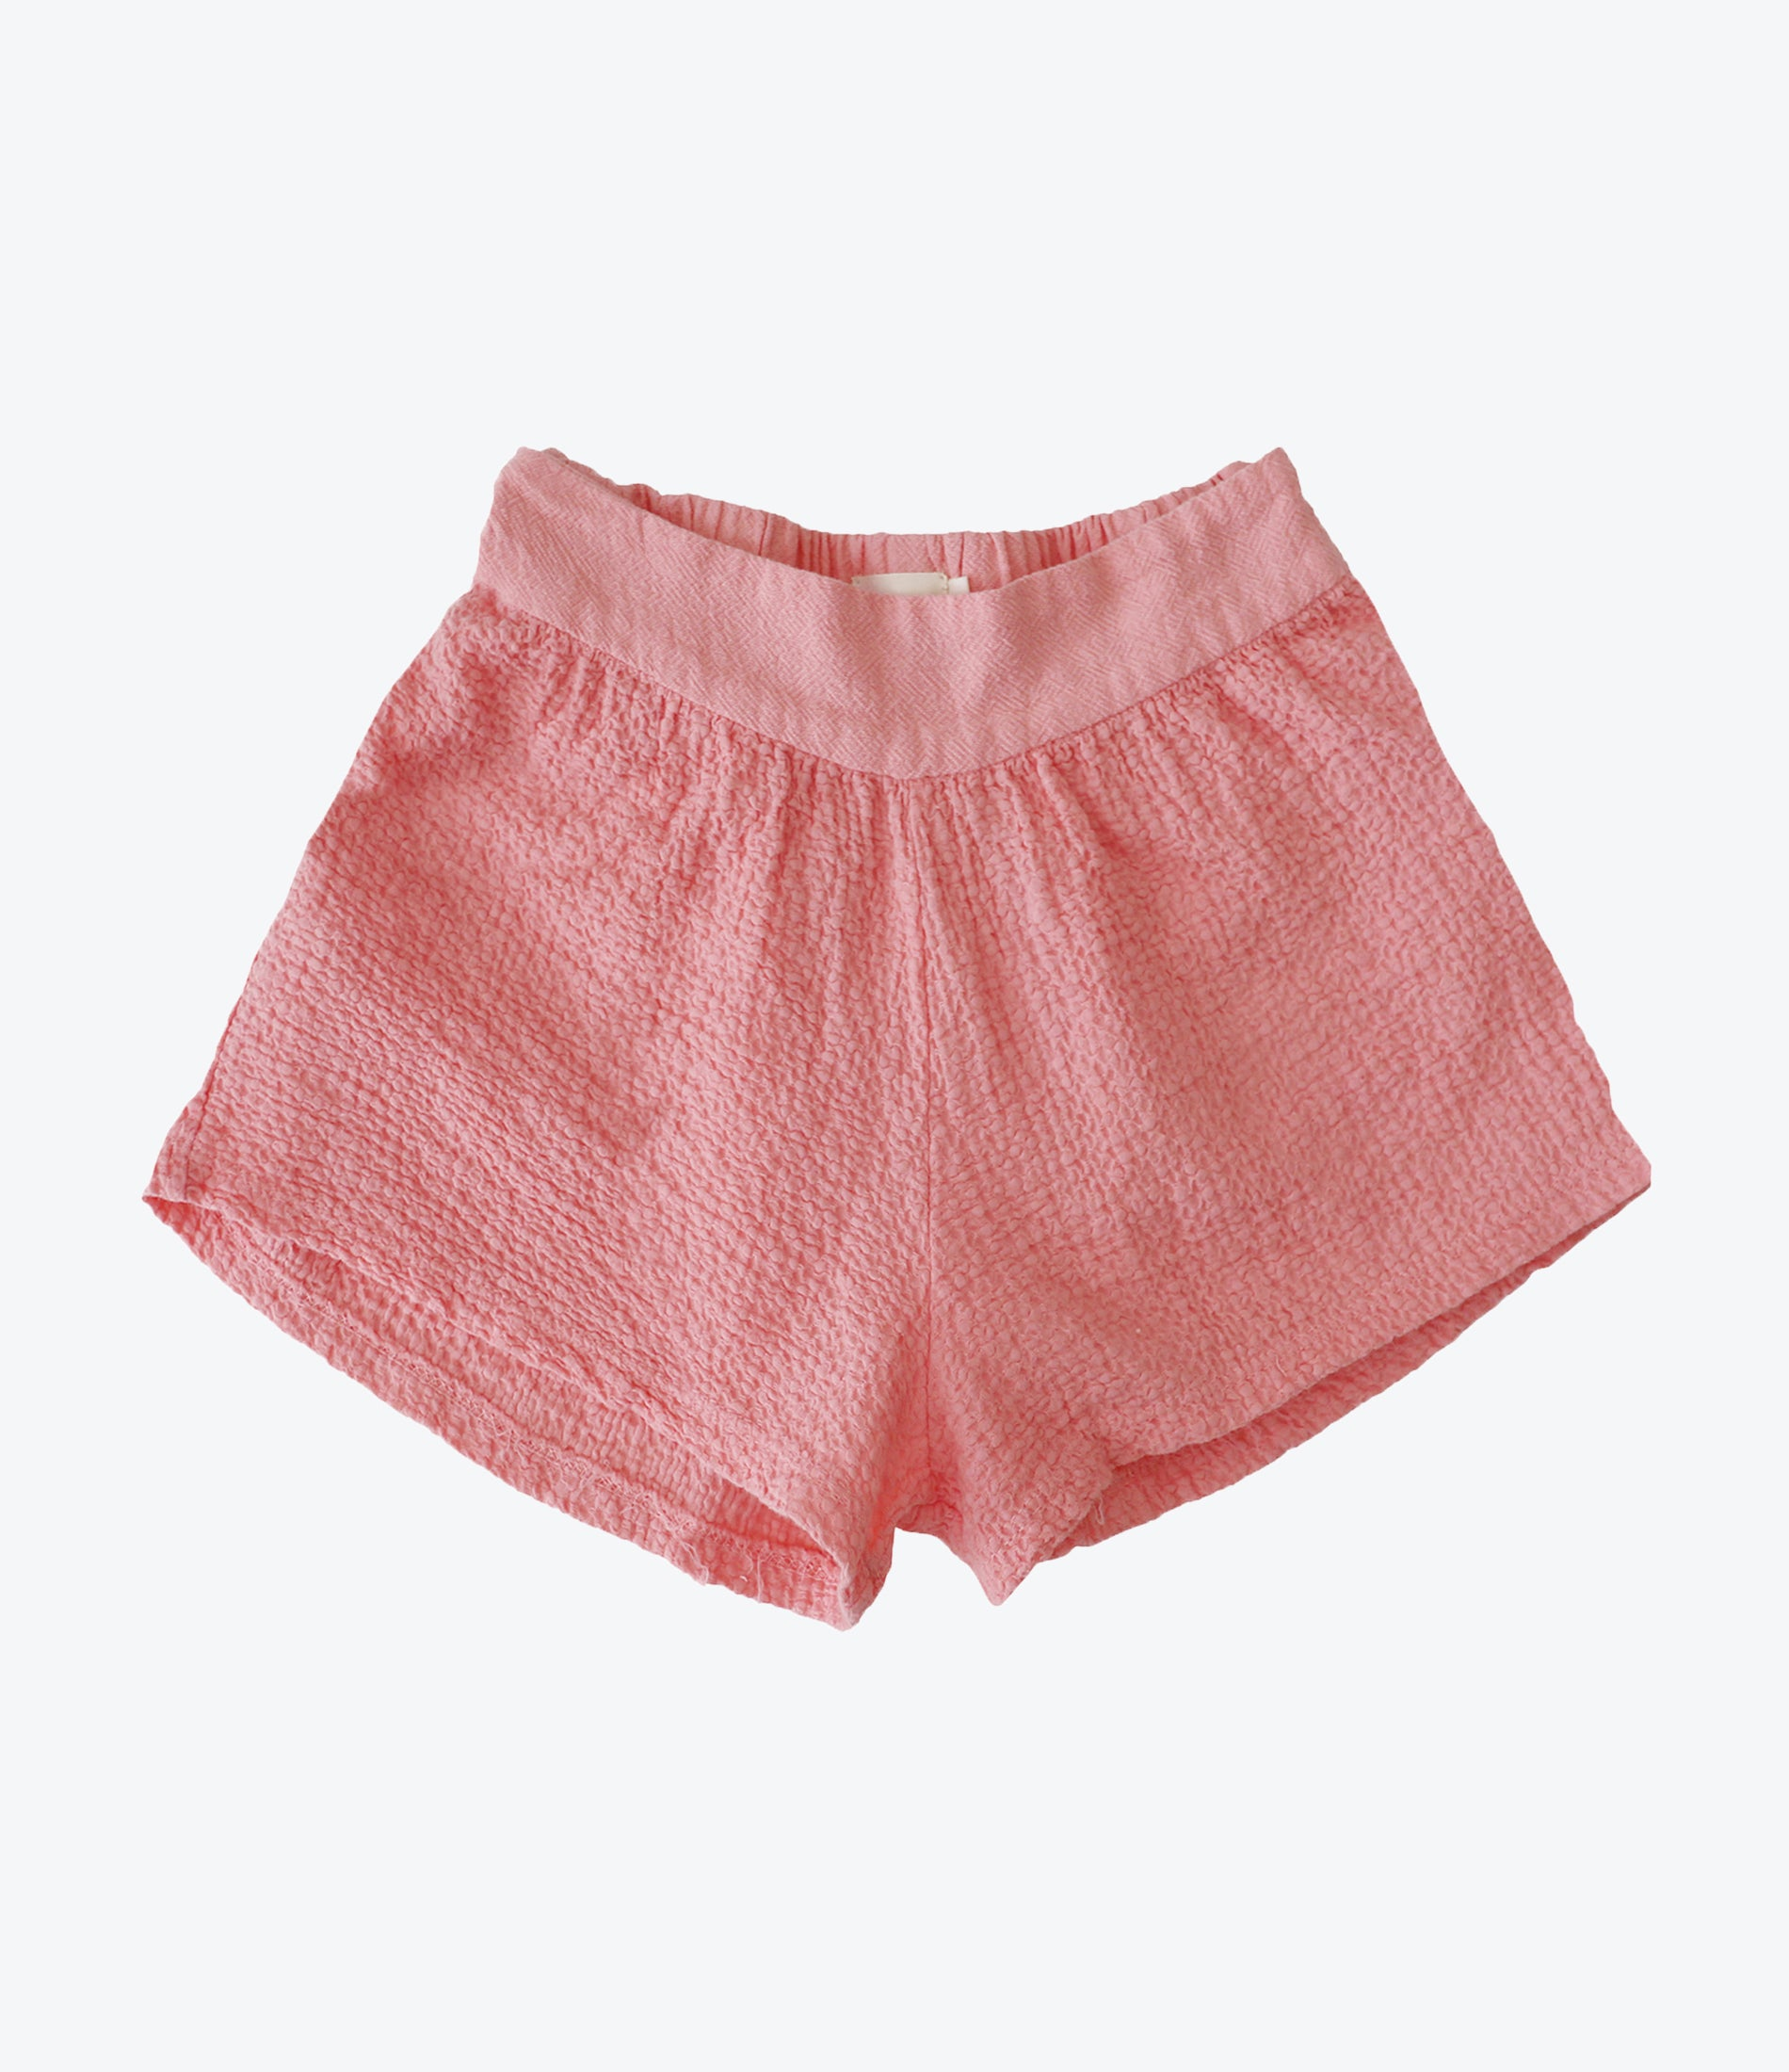 nico nico clothing, colorado skort in peony, shop now at Made mini online store for kids and children. Auckland, NZ